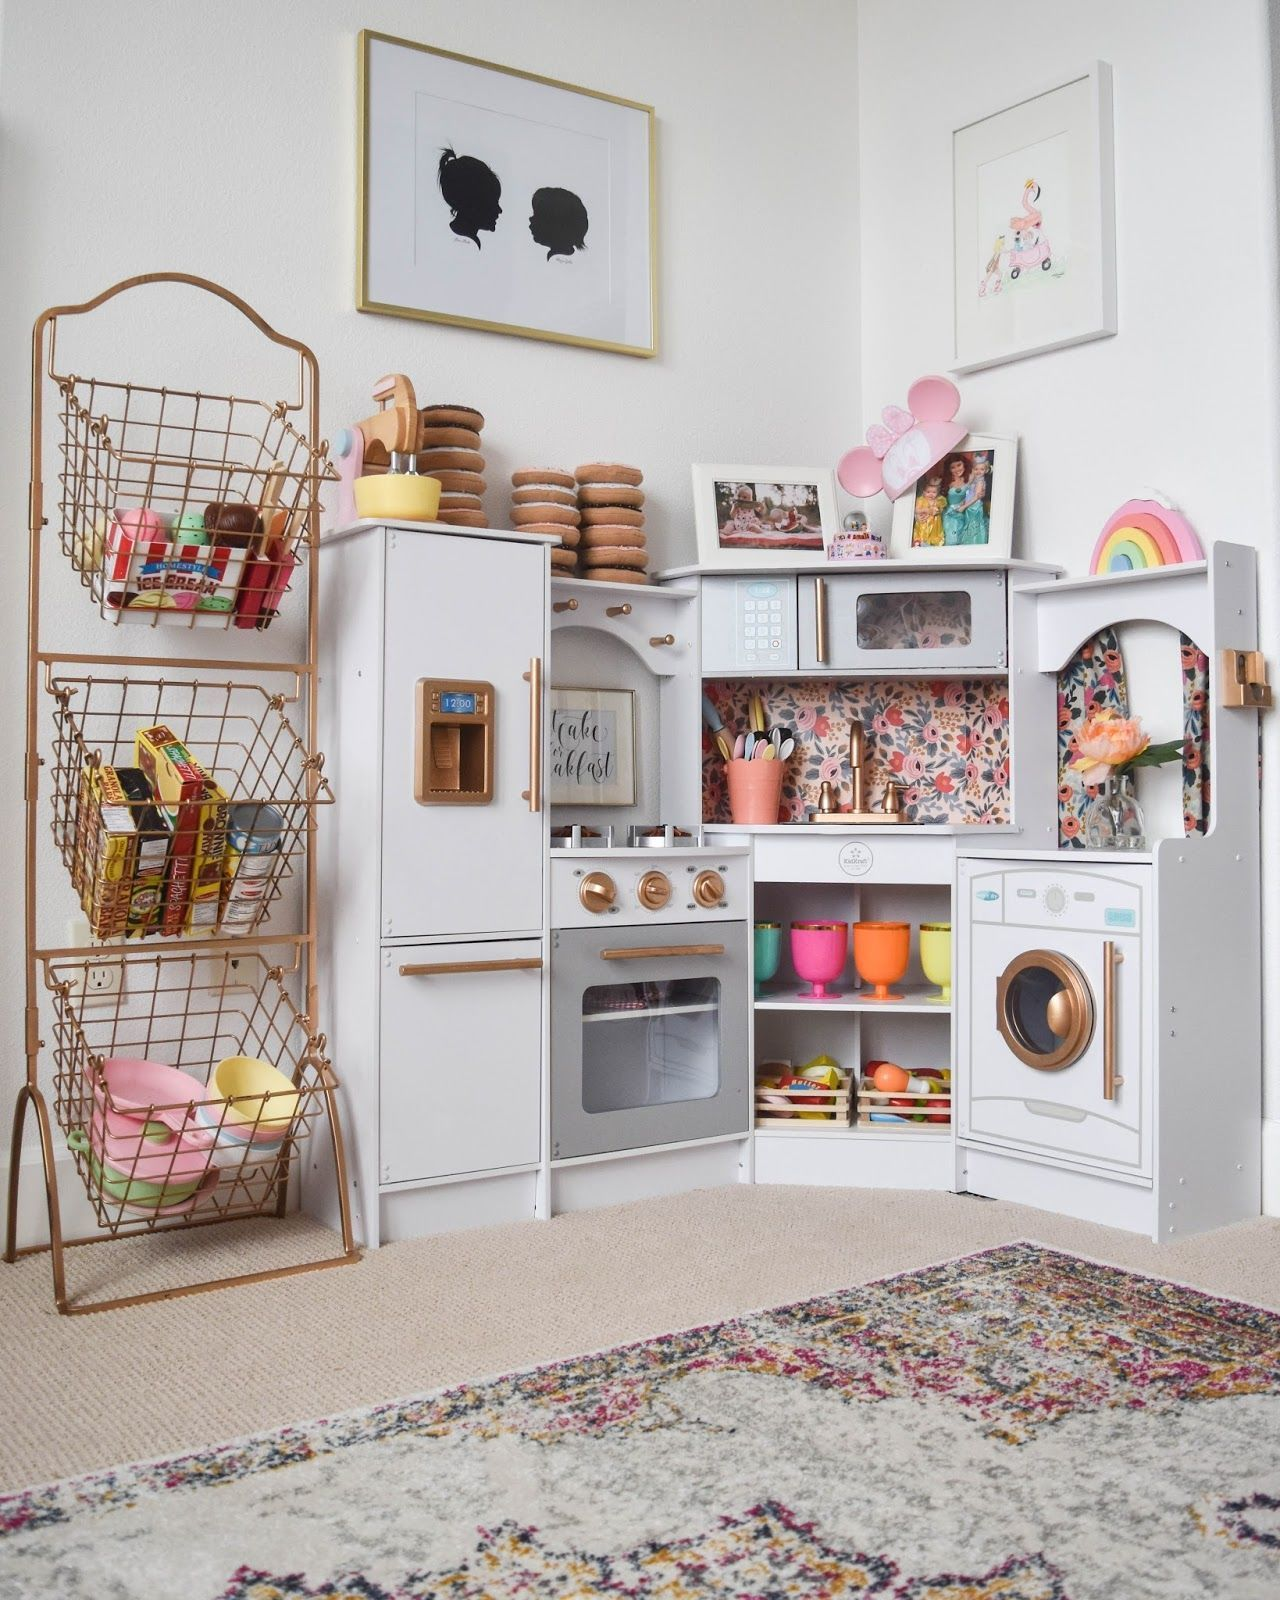 Stylish toy storage ideas how to organize toys